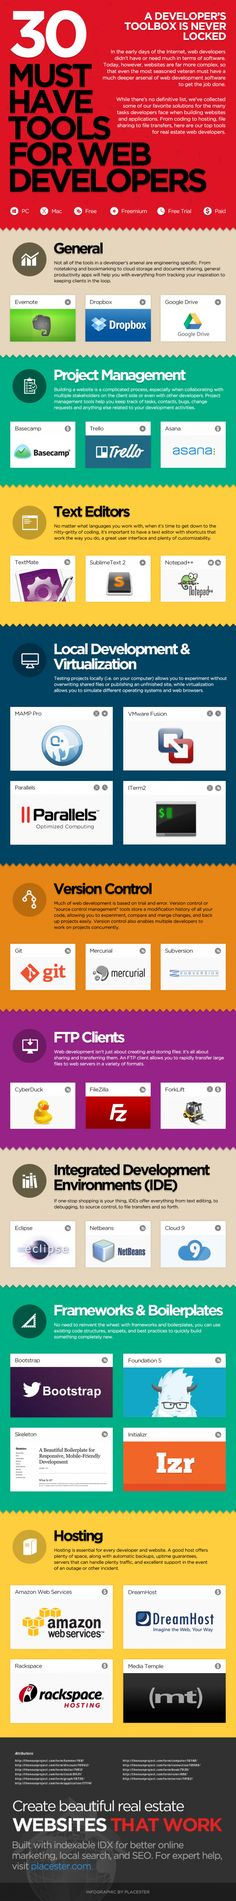 "Must Have Tools for Web Developers,"" web design and development infographic by Placester. Web Design Tools, Graphisches Design, Web Design Trends, Web Design Inspiration, Tool Design, Marketing Digital, Marketing Mail, Marketing Online, Computer Programming"